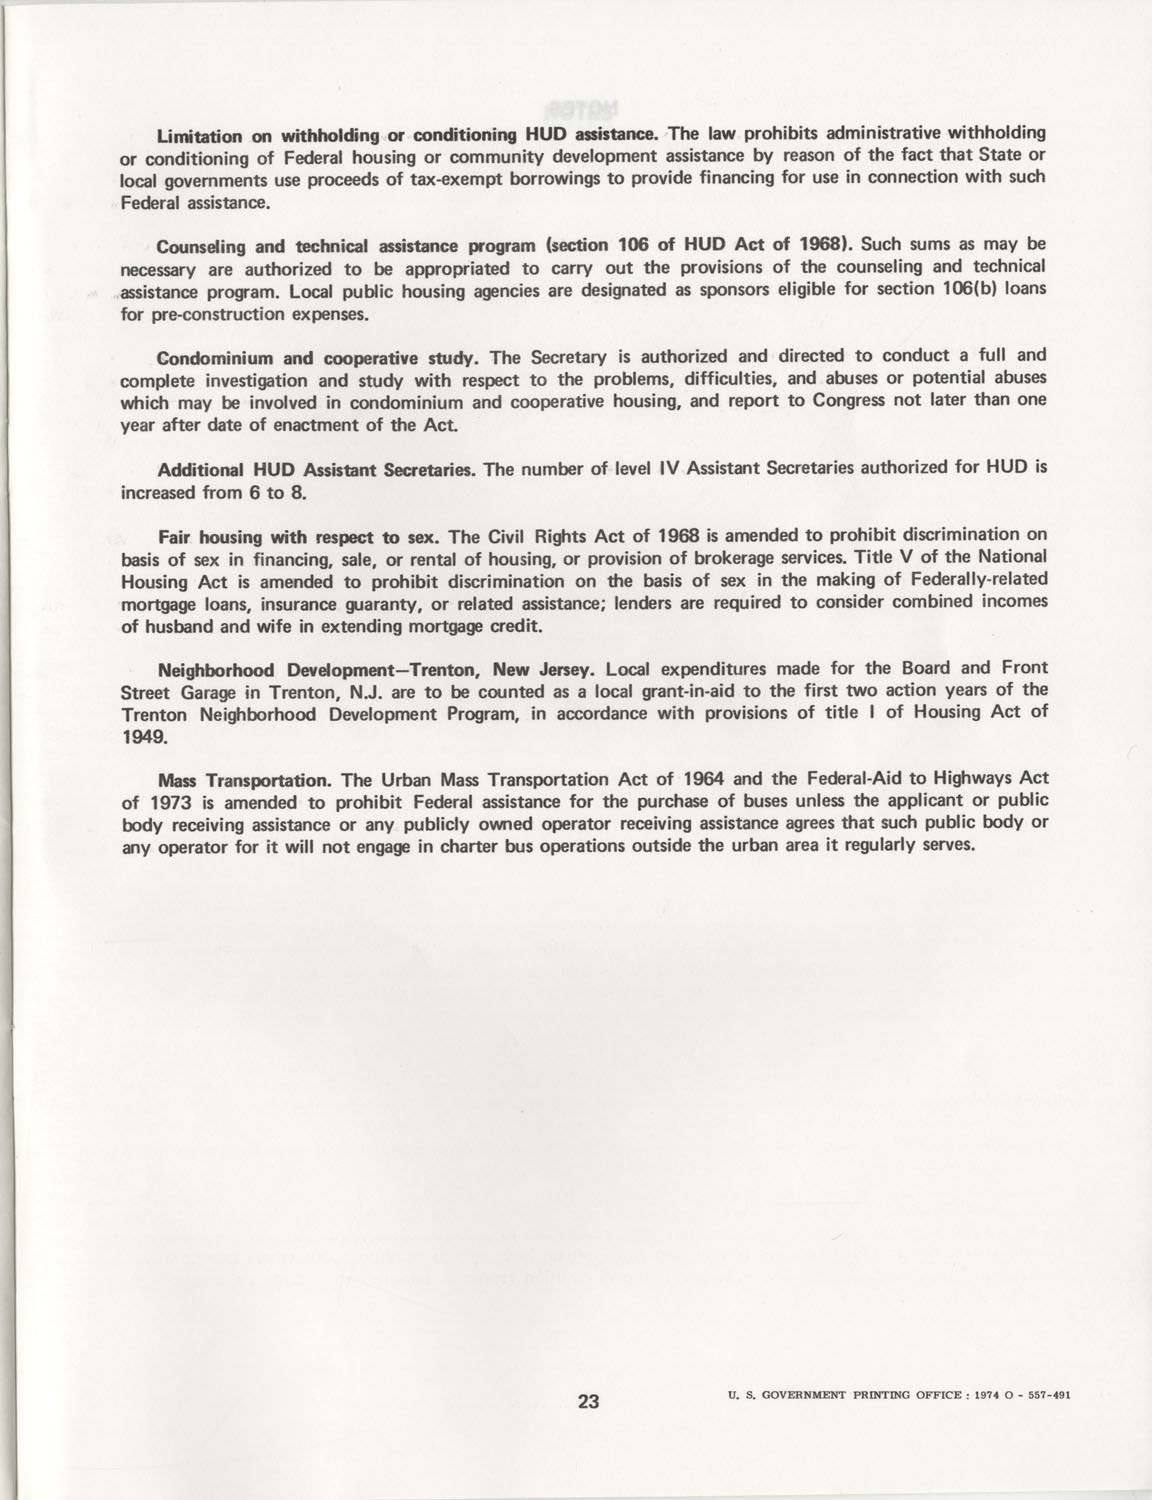 Summary of the Housing and Community Development Act of 1974, Page 23